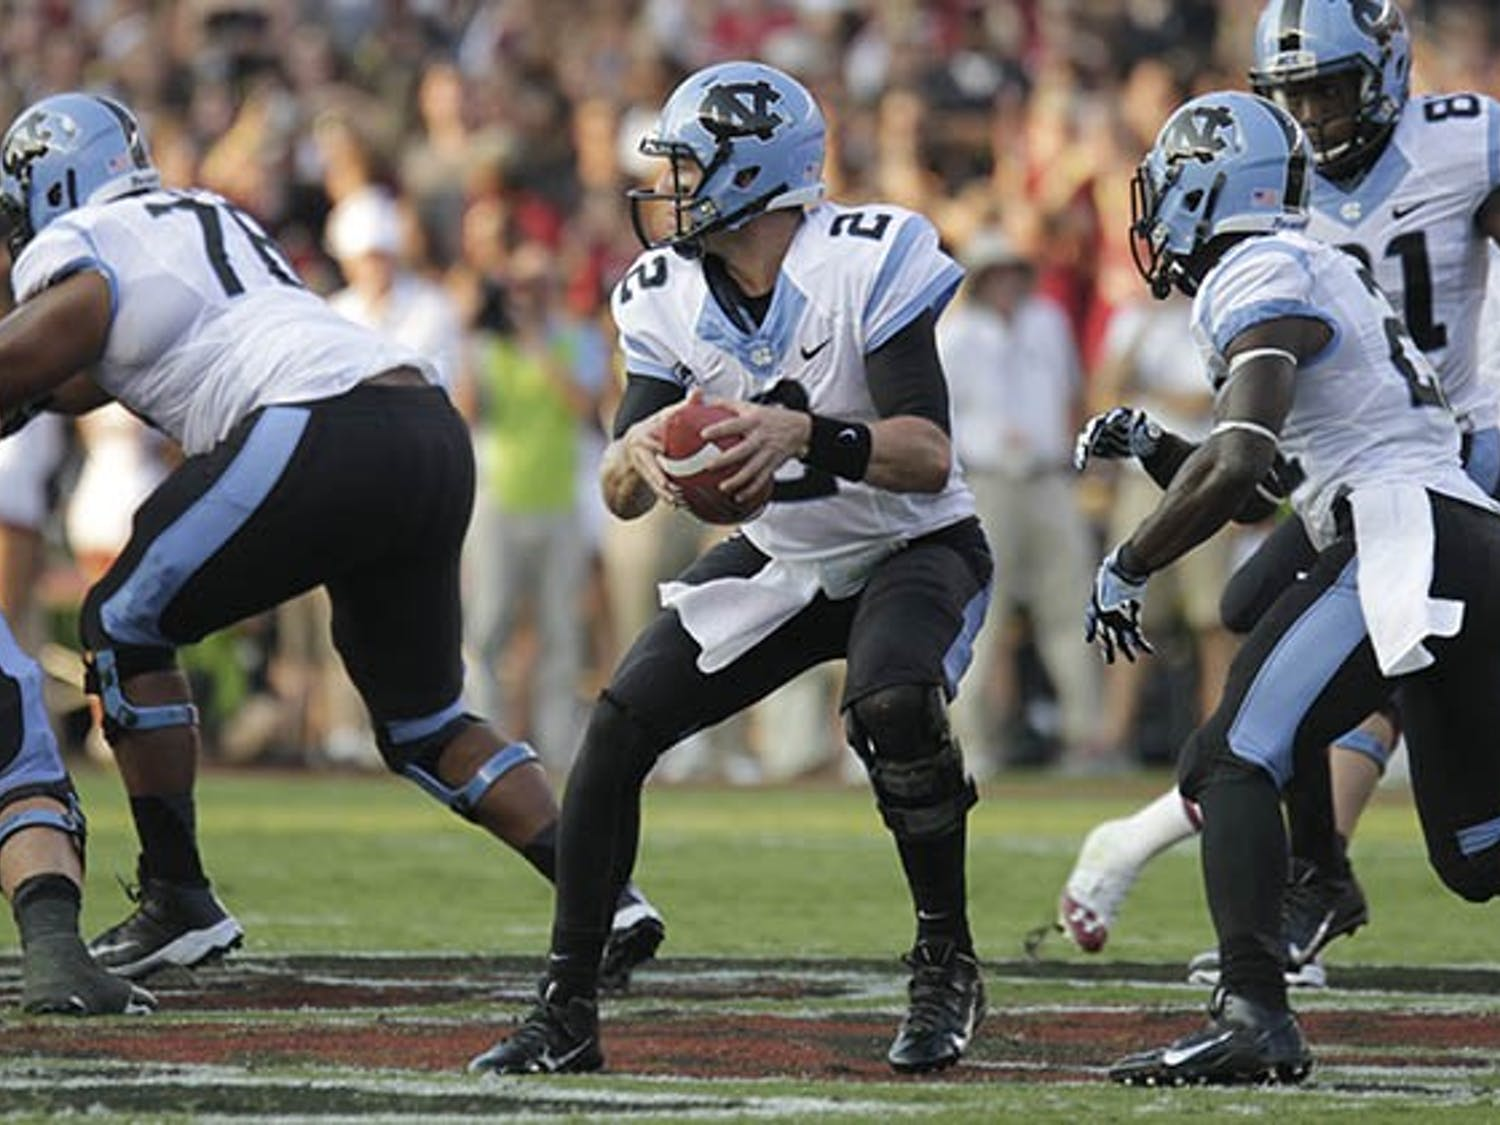 The USC Gamecocks led the UNC Tar Heels by a score of 17-7 at halftime.